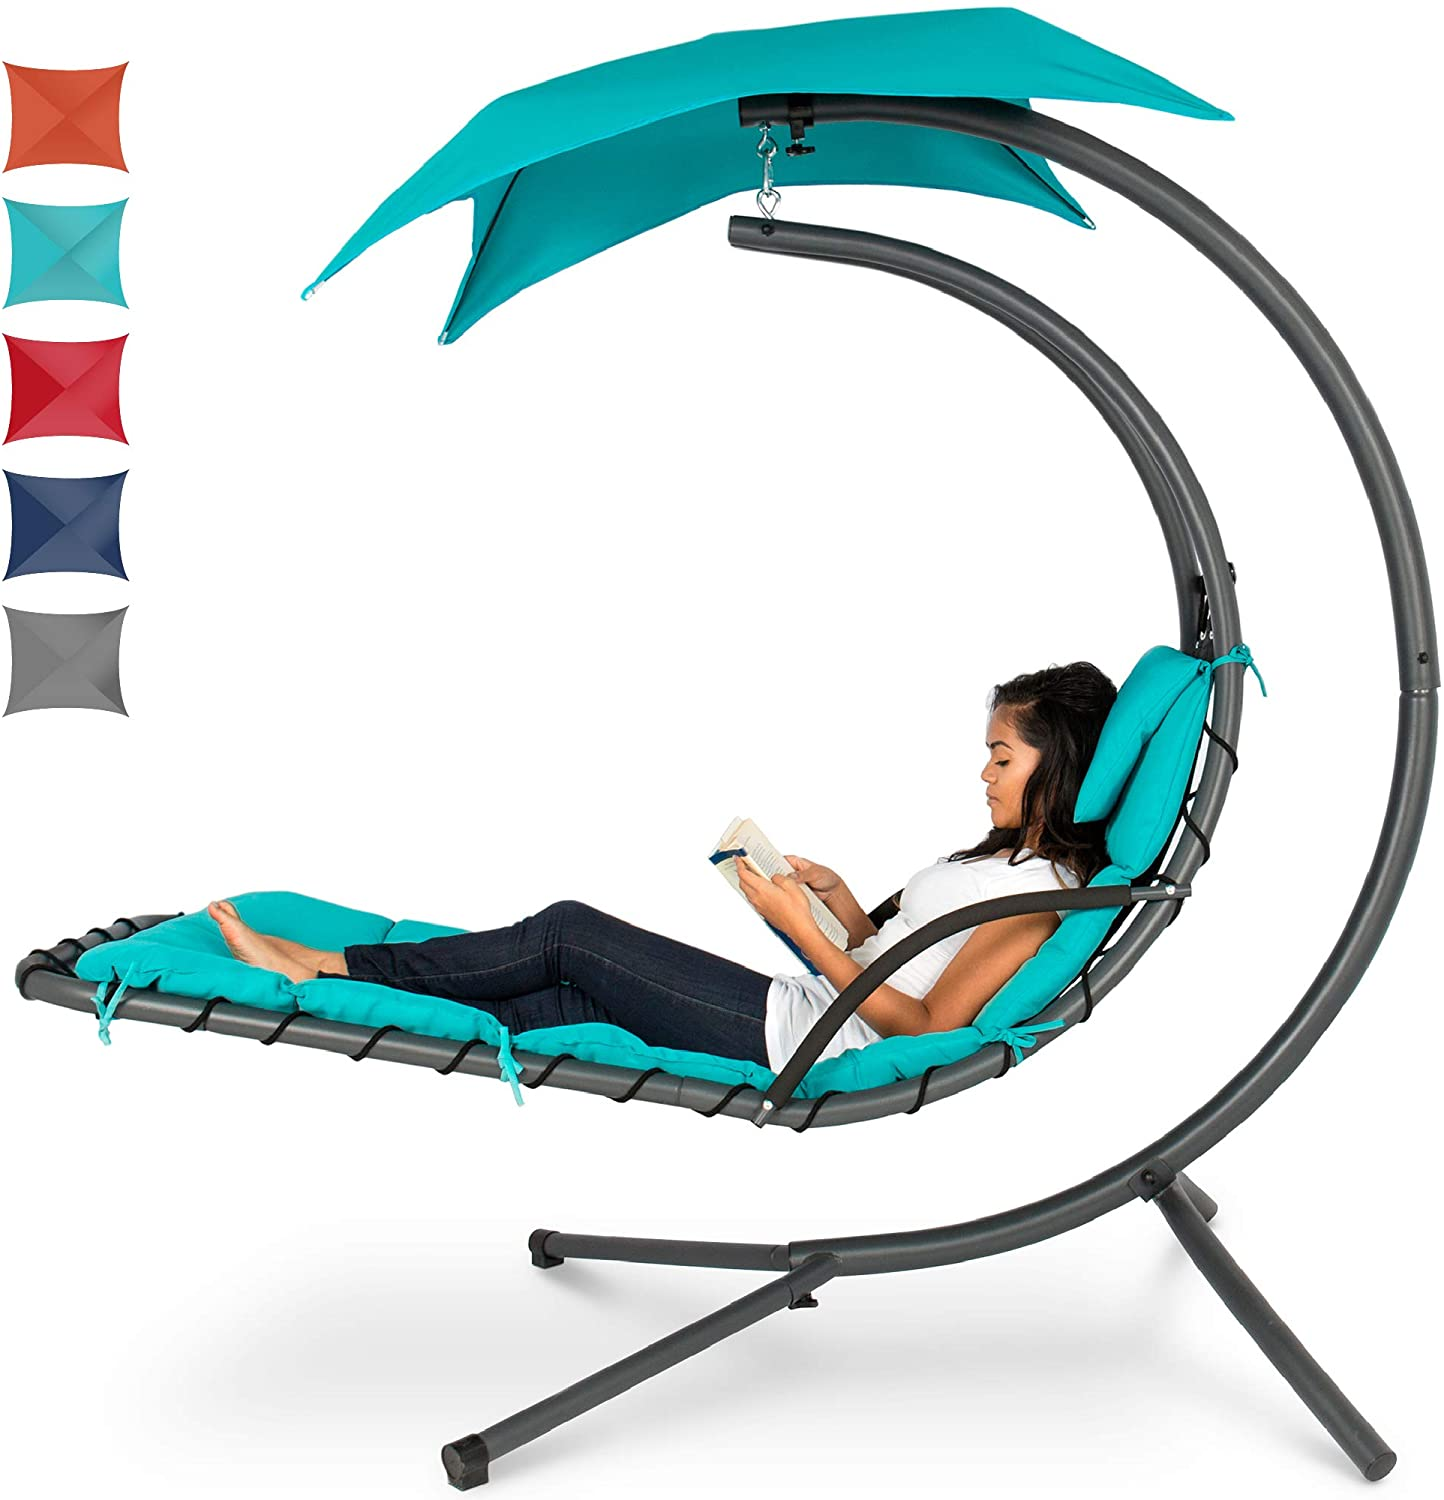 Best-choice-products-Backyard-furniture-1 15 Unique Furniture Designs for Outdoor Small Spaces